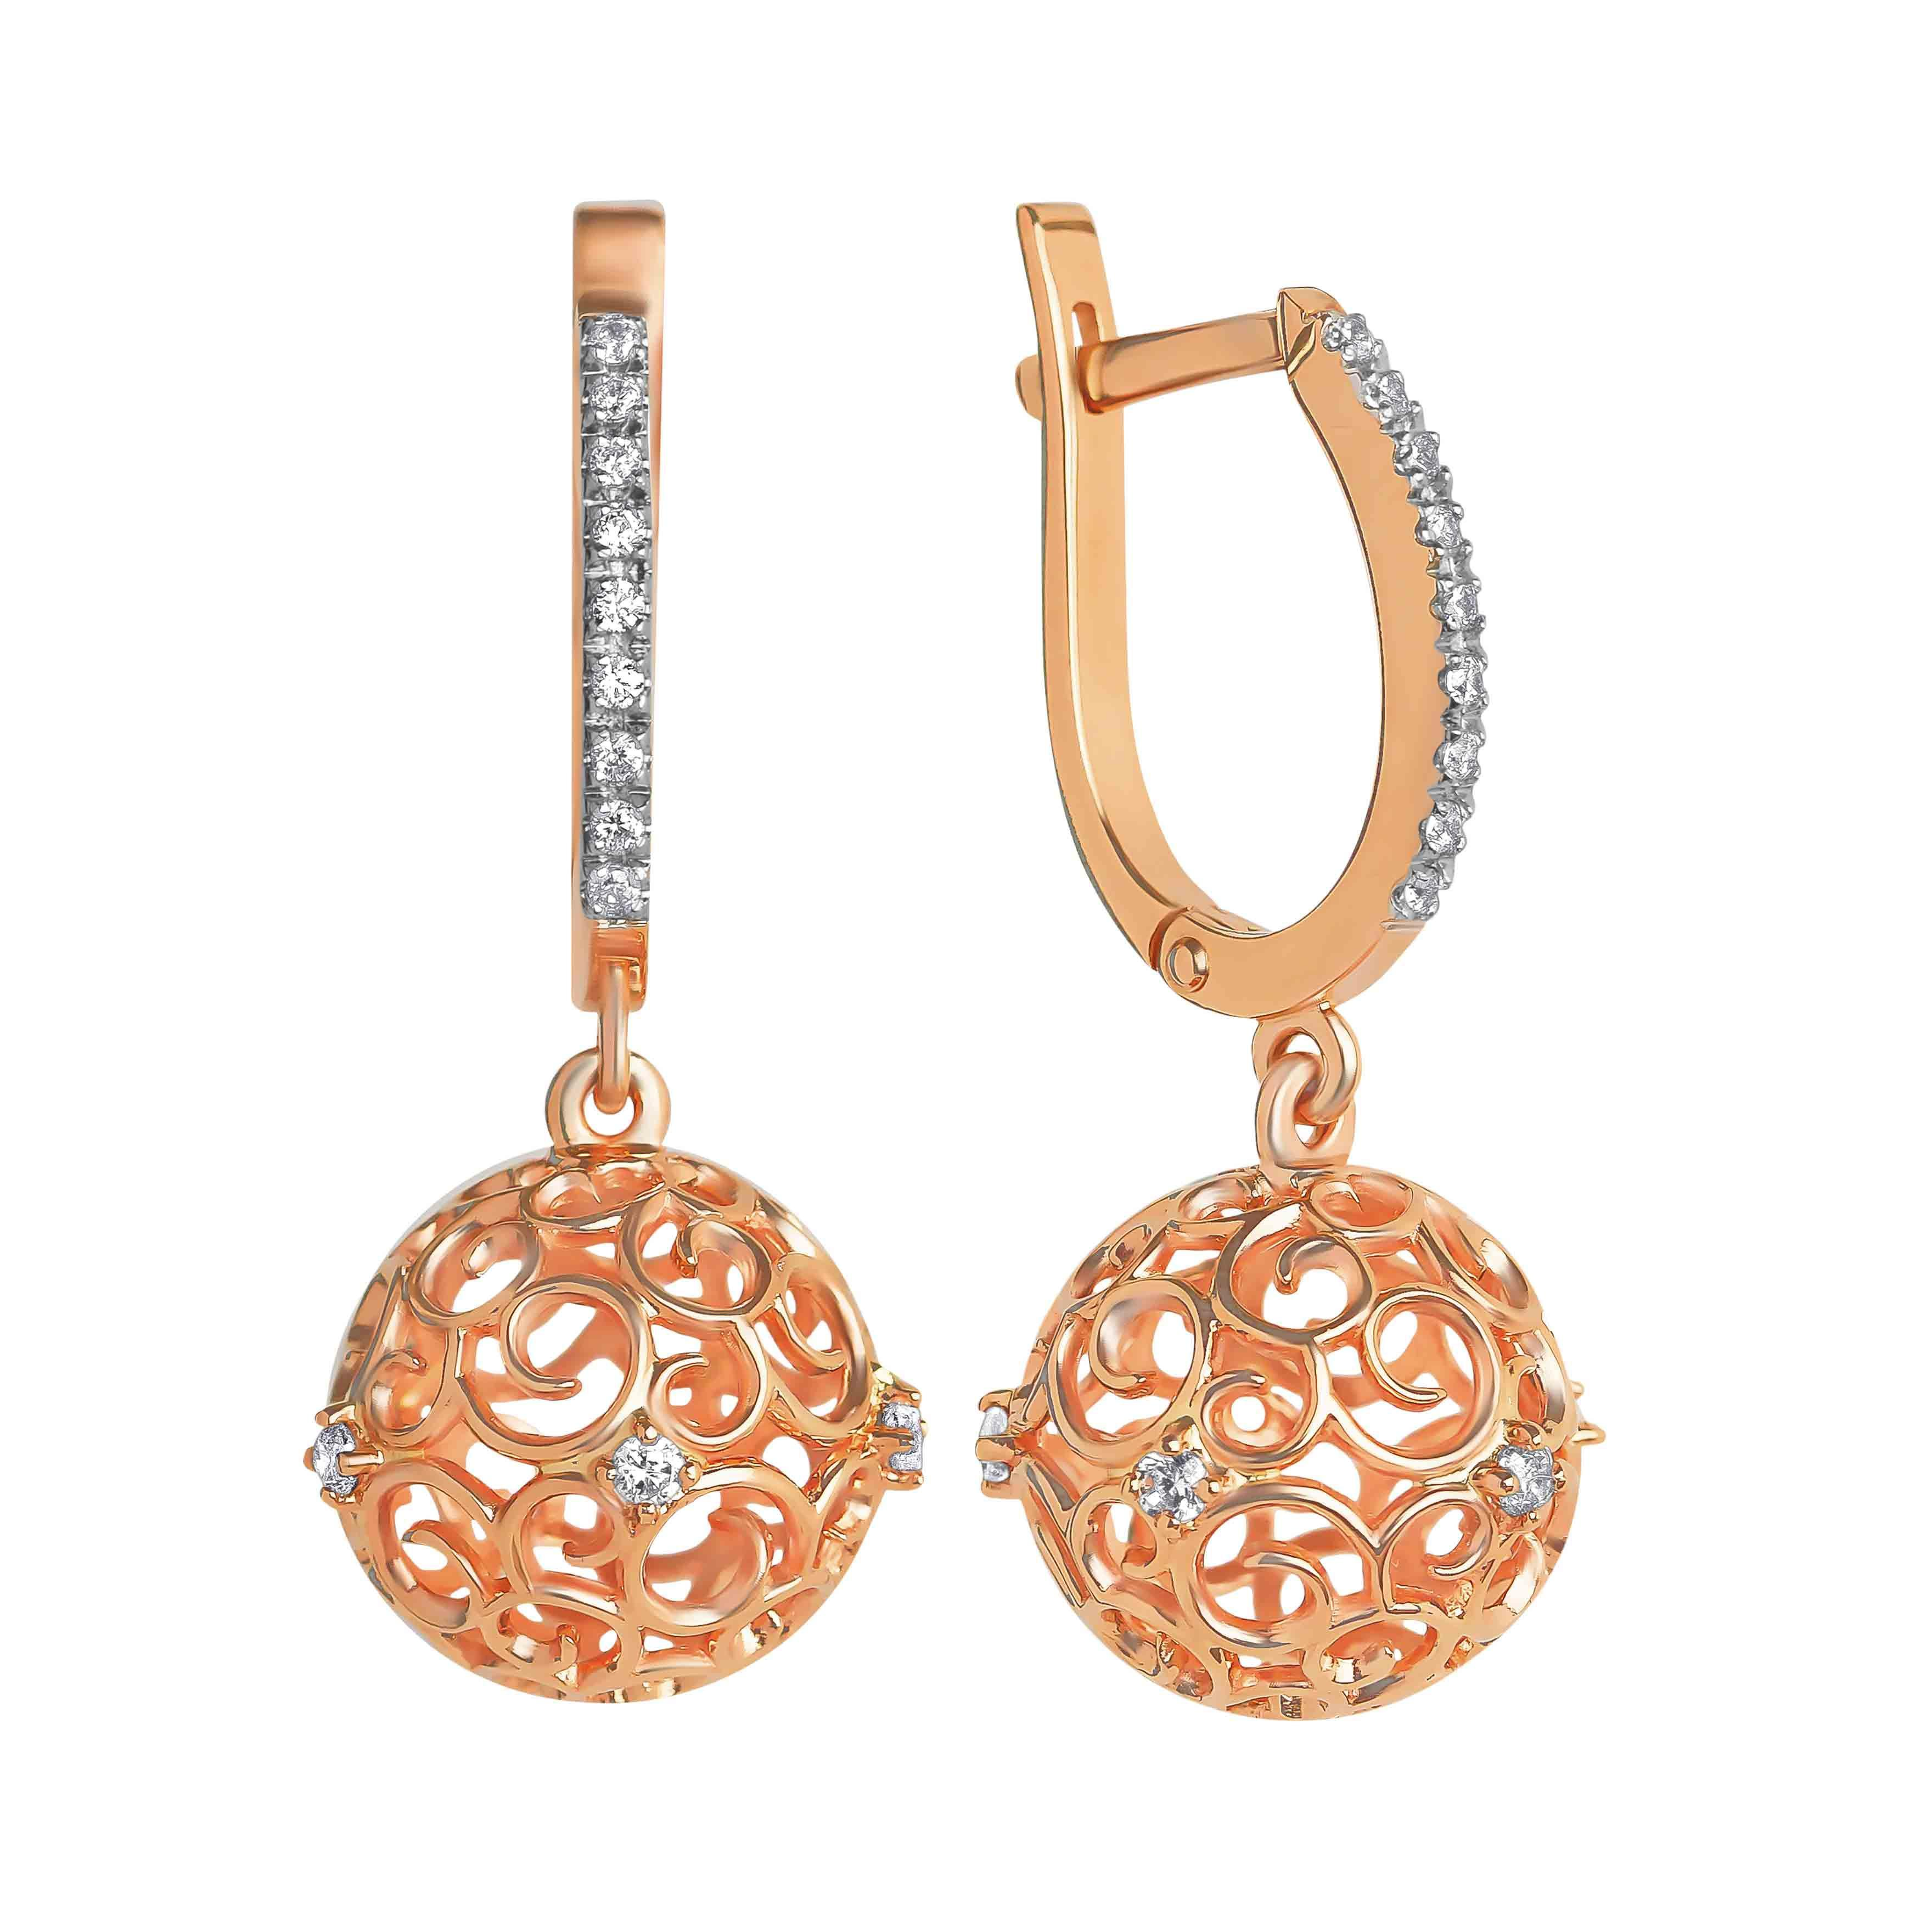 Sphere-shaped Openwork Dangle Earrings